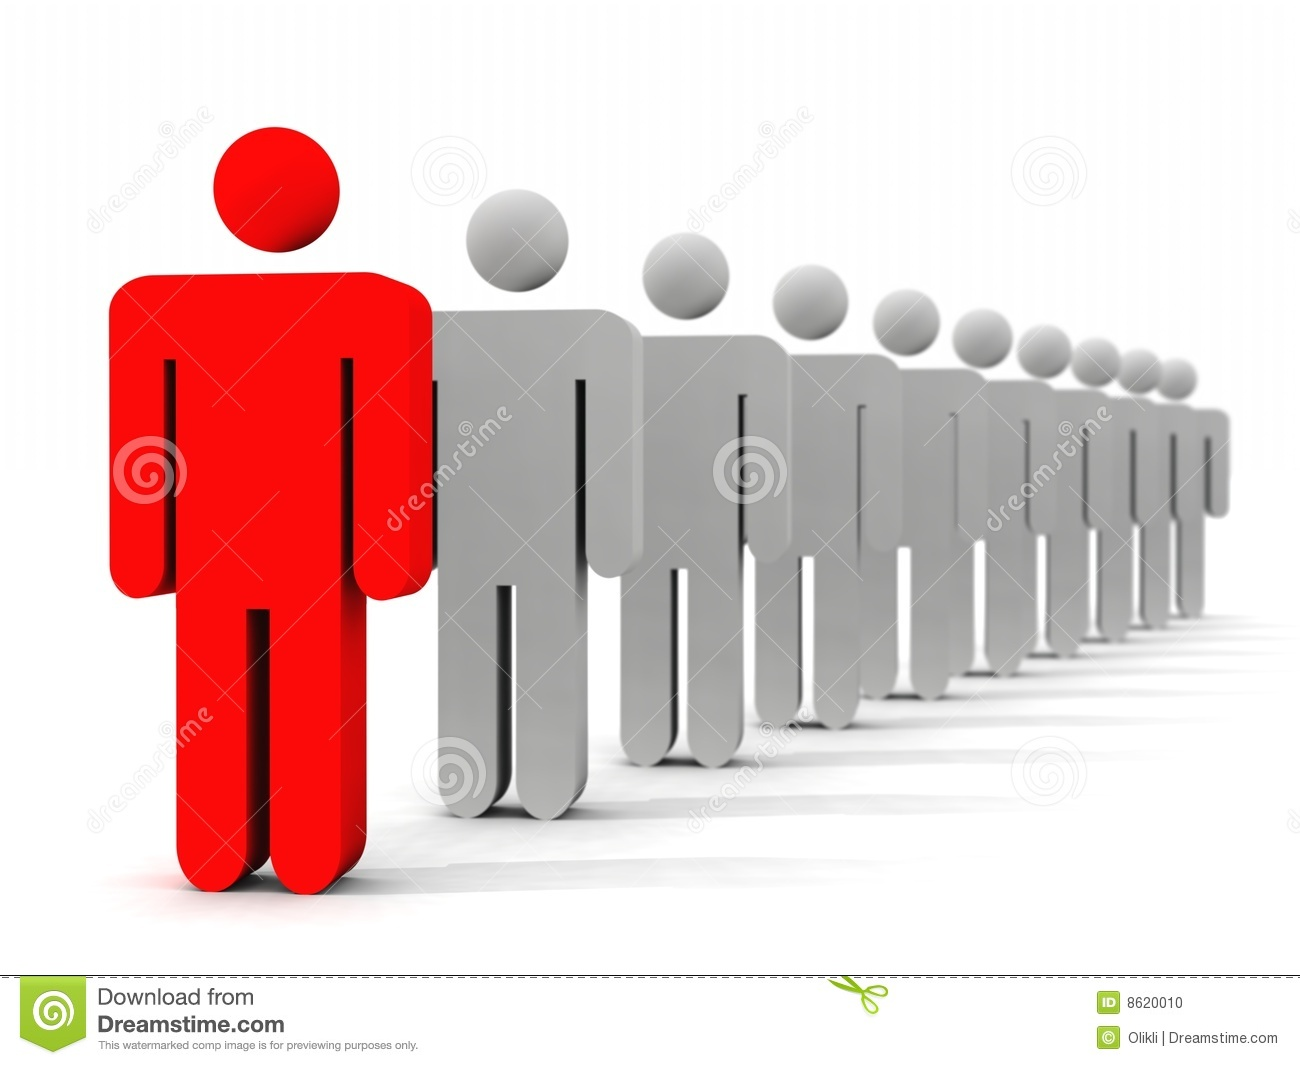 Symbolic 3d picture of a person standing in first place in a queue.